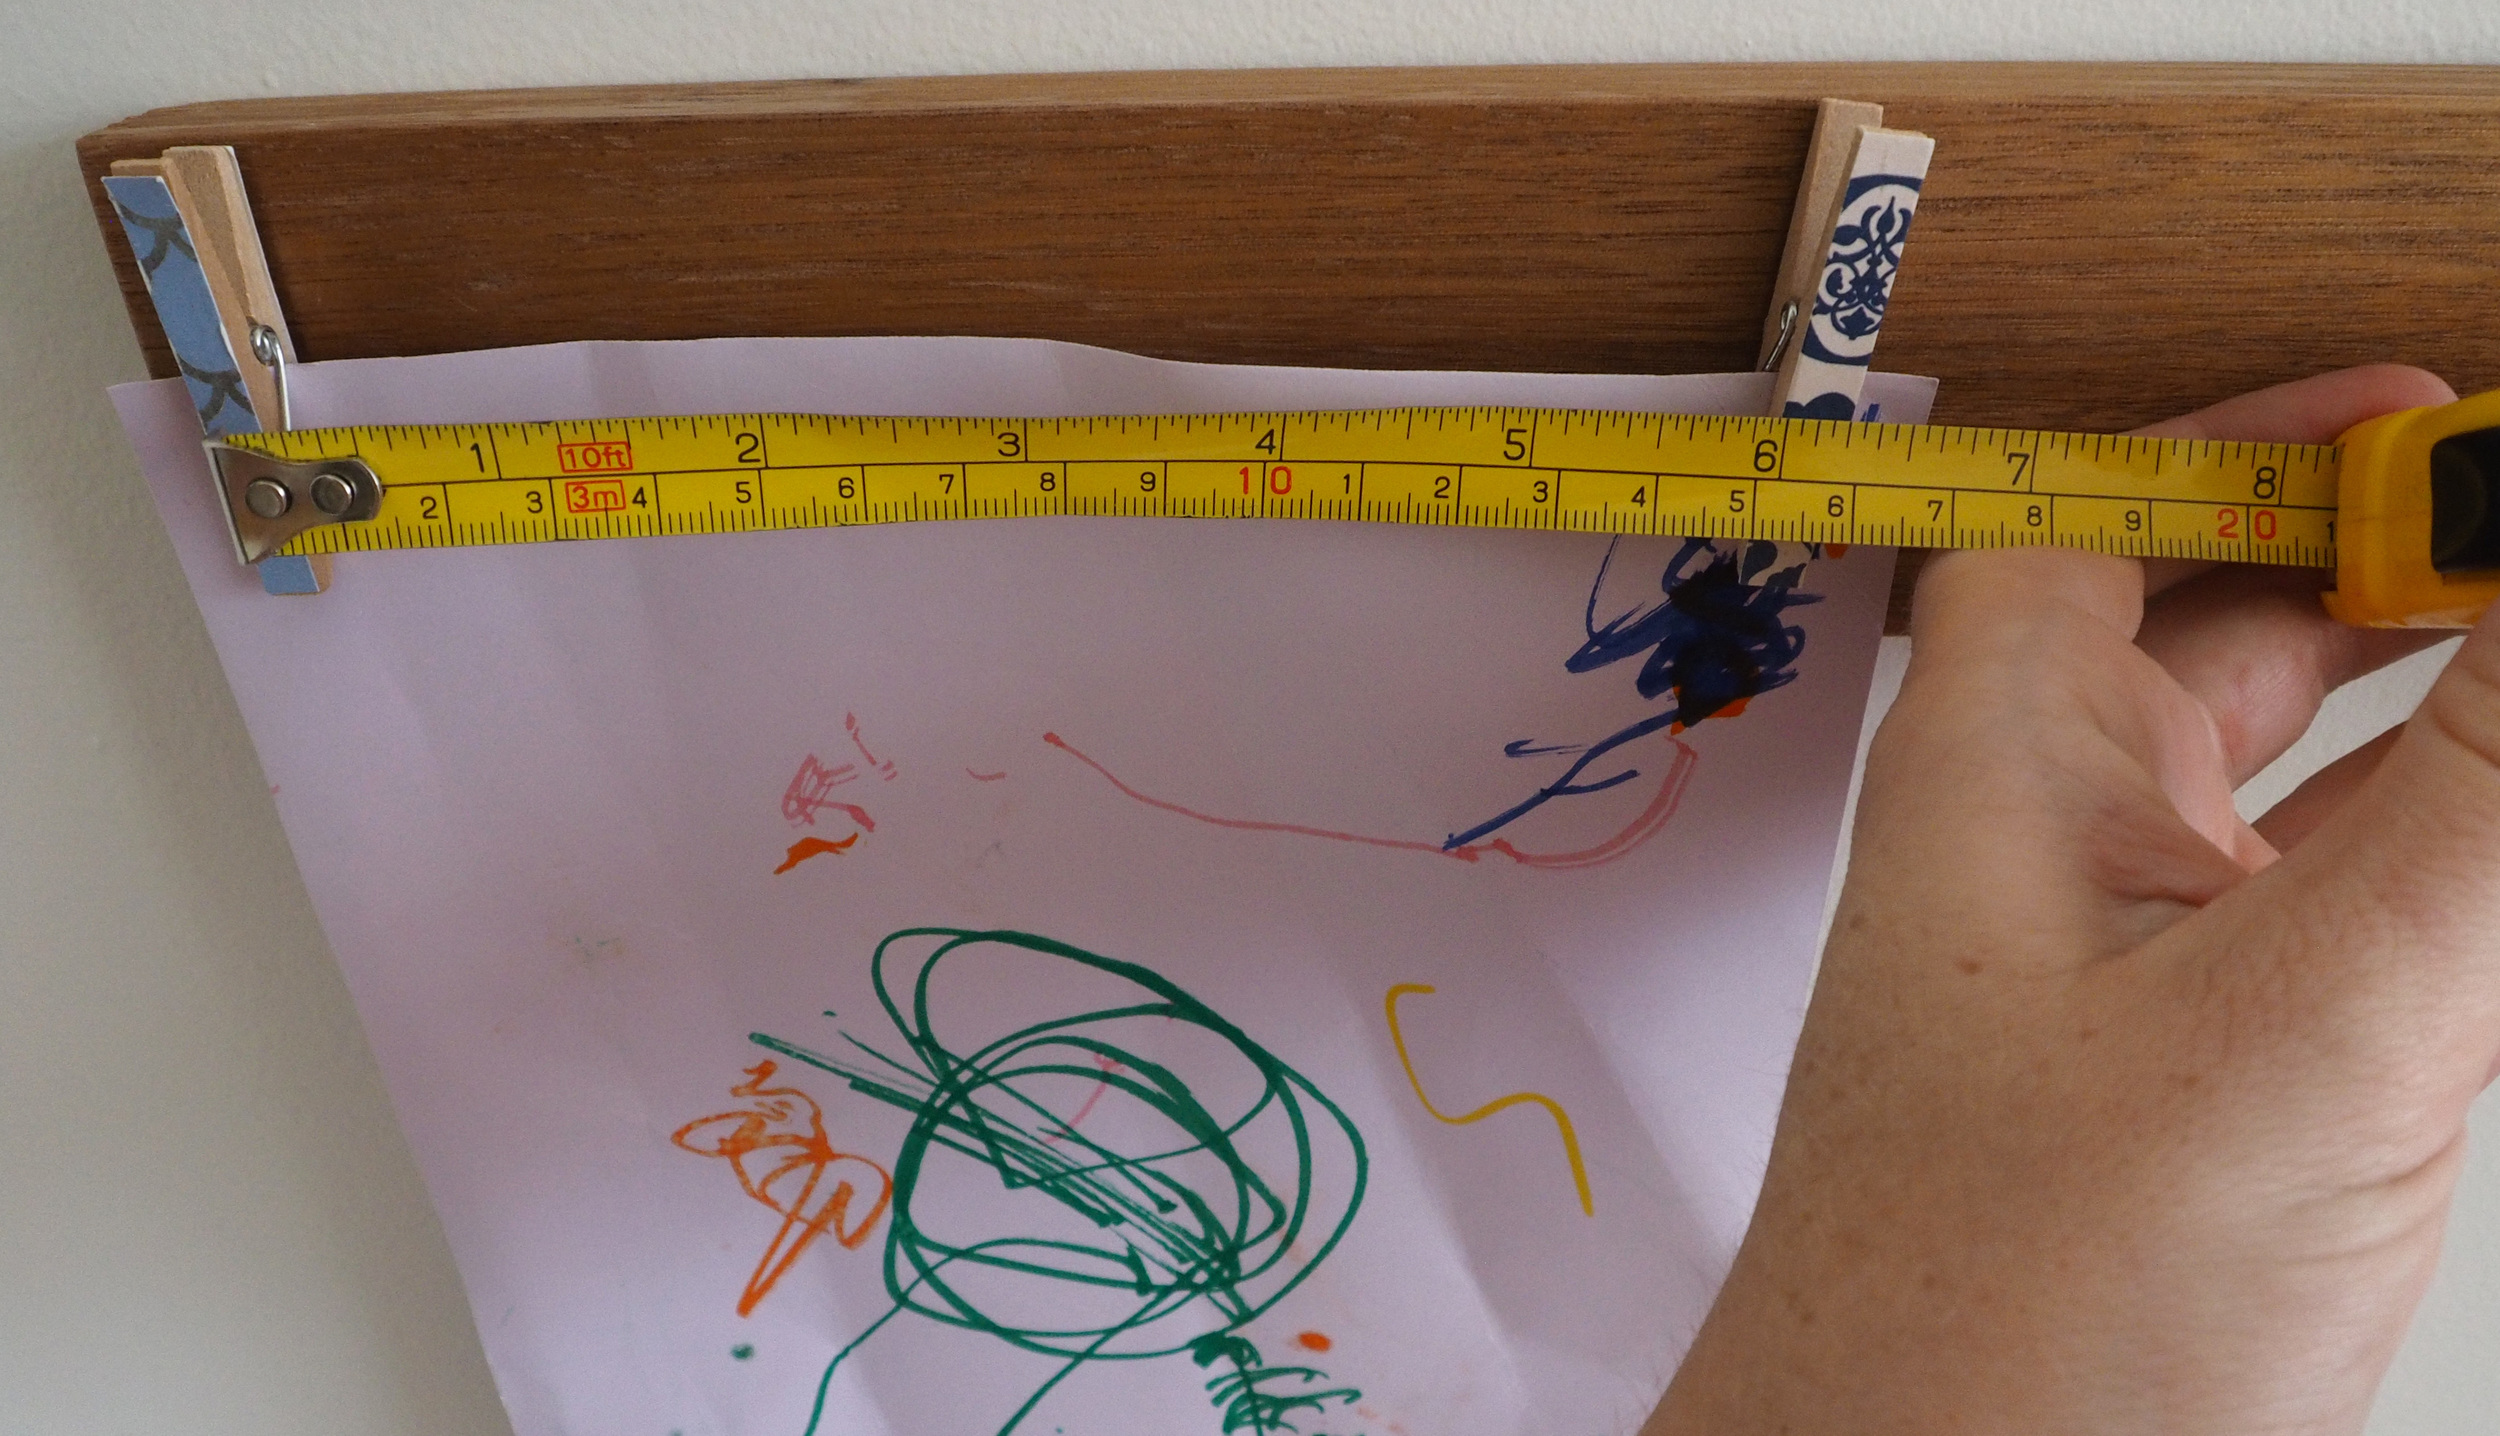 Measuring distance between the pegs to hold artwork efficiently